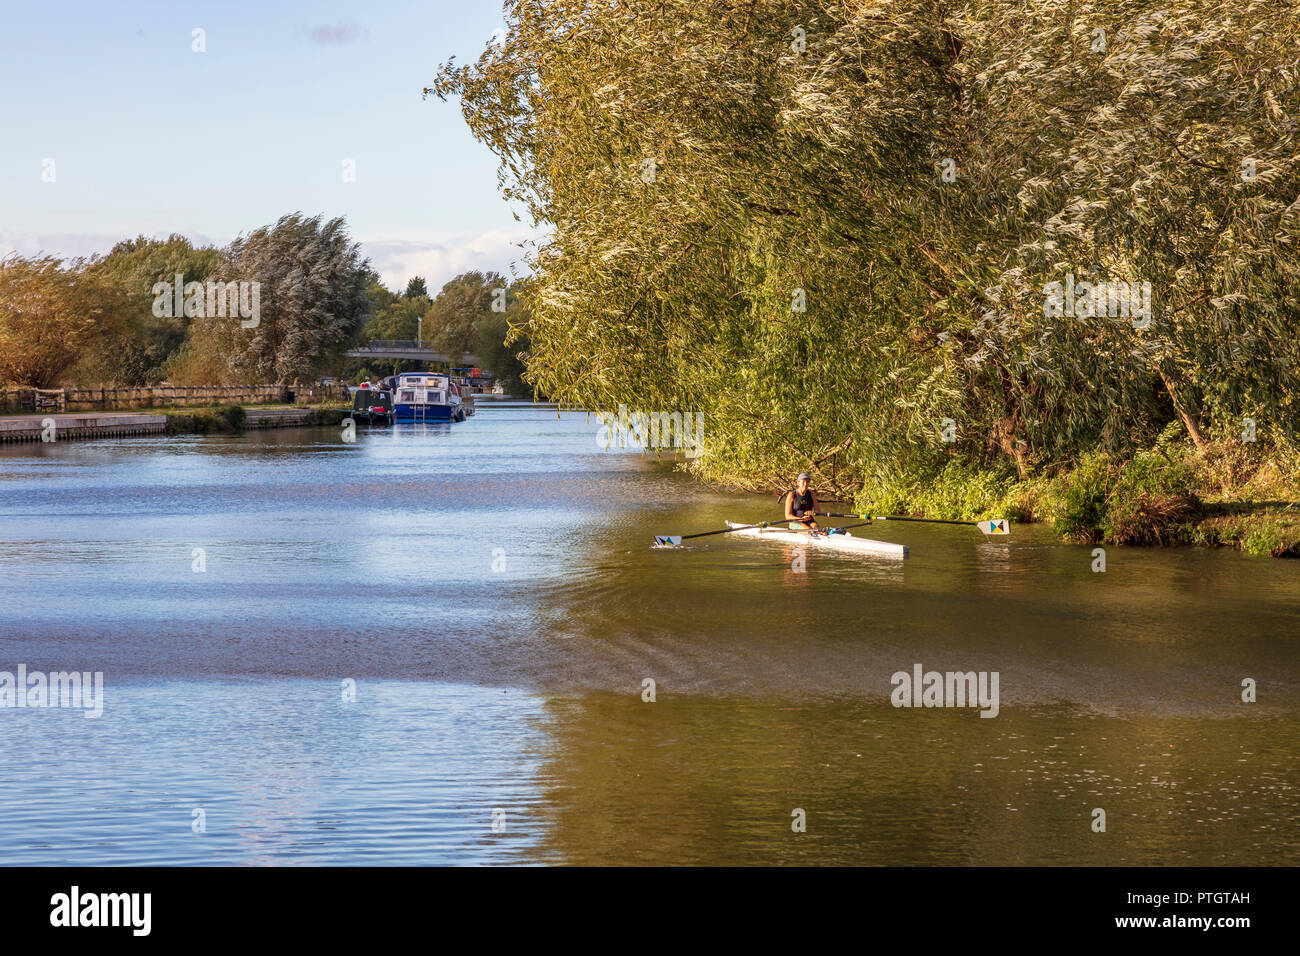 A woman rower stops under the Willow trees near Iffley lock and rests before returning to Oxford, Iffley, Oxfordsire, UK - Stock Image